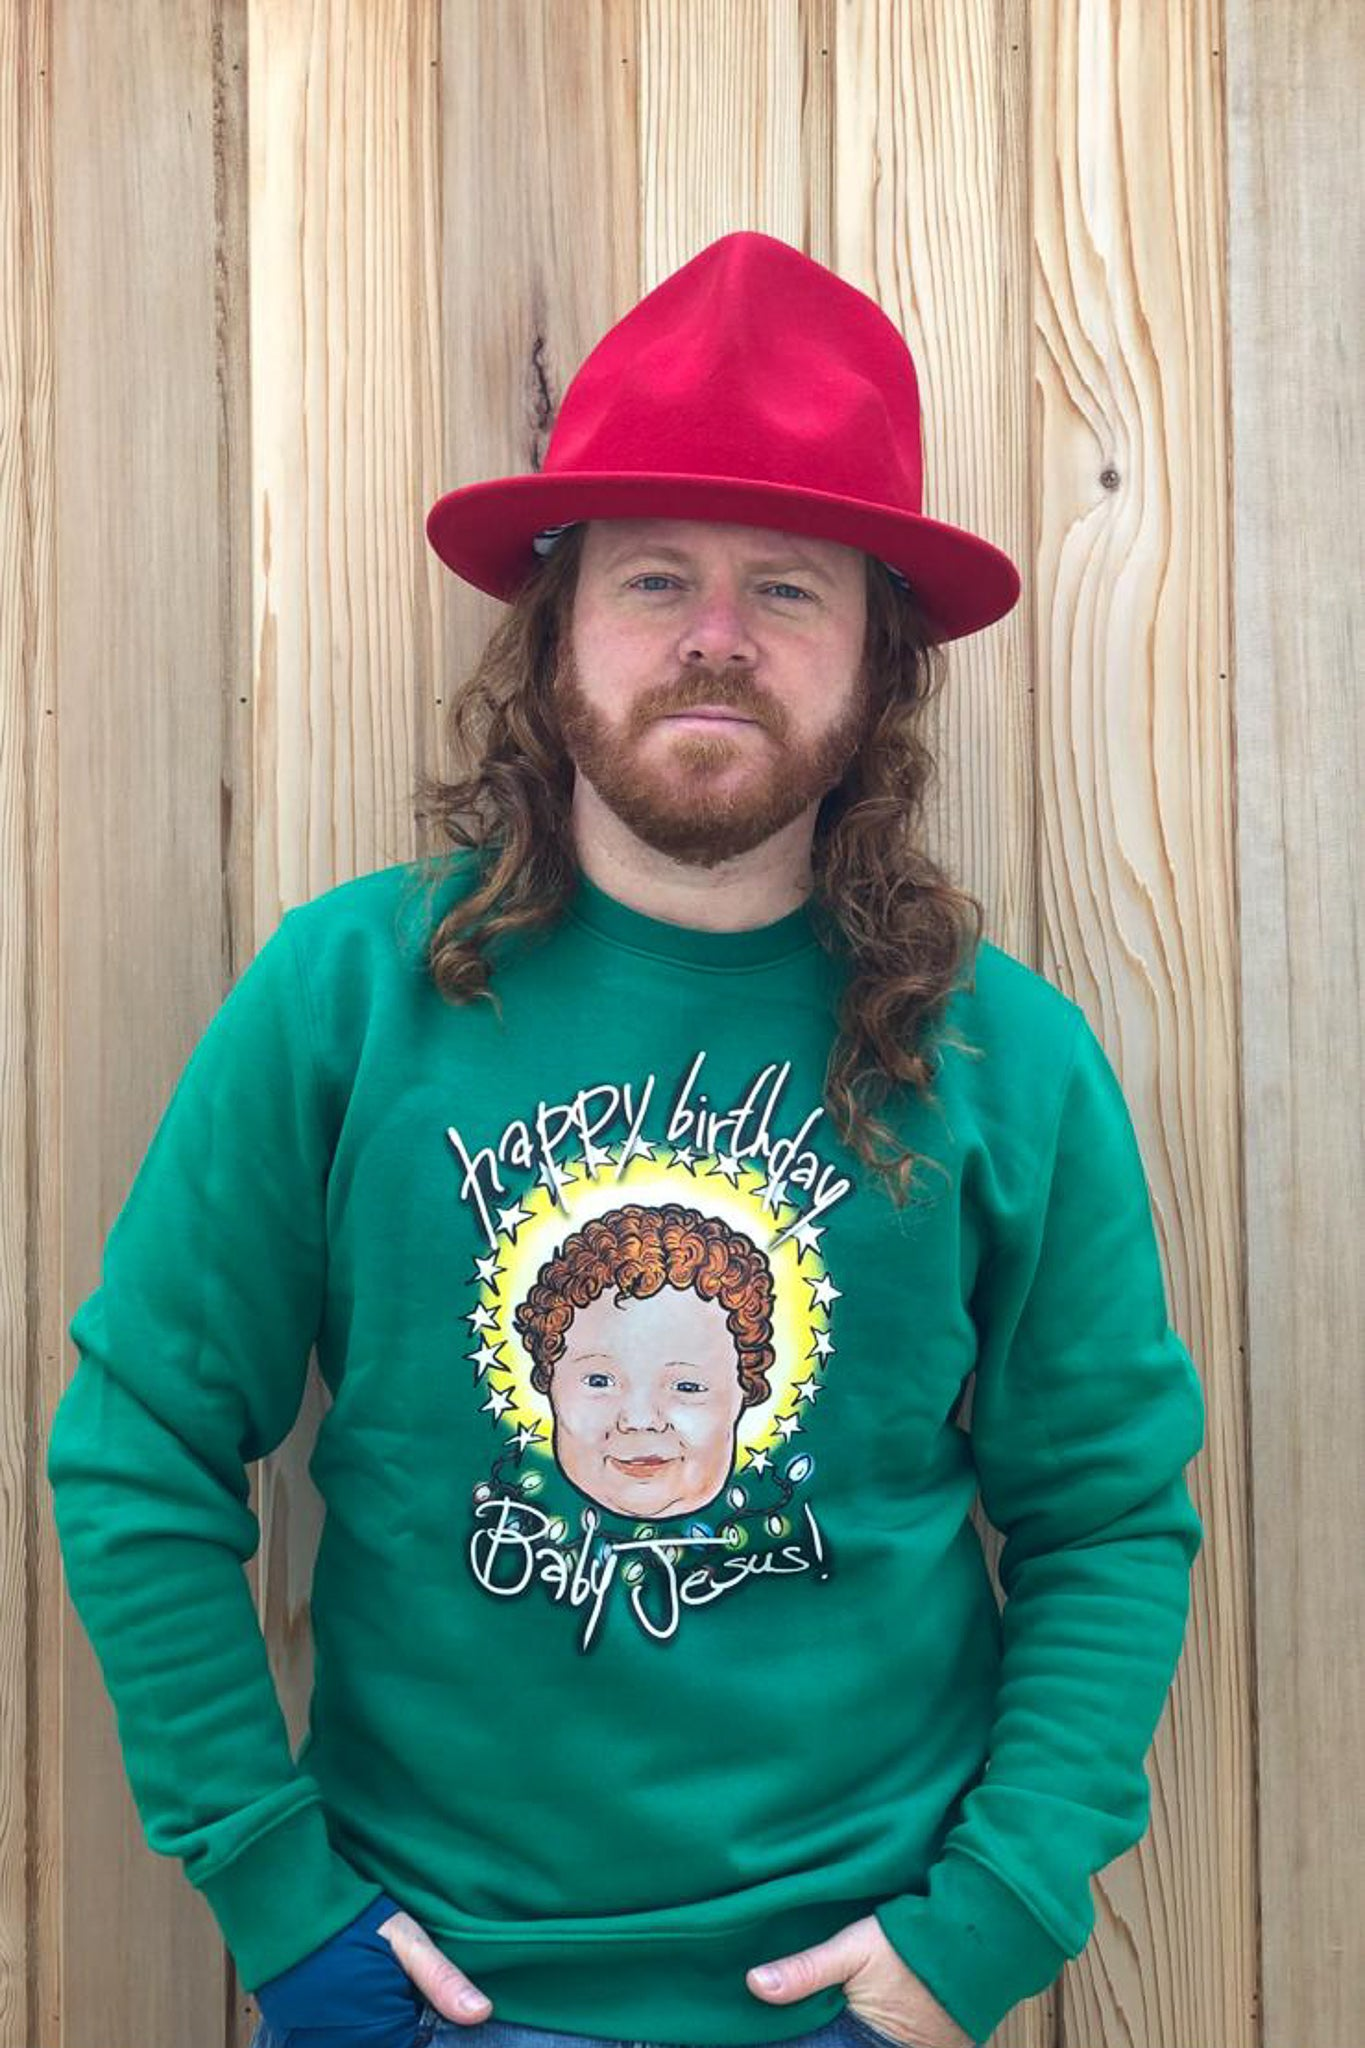 HBD Baby Jesus! Crimbo Sweatshirt in Festive Green